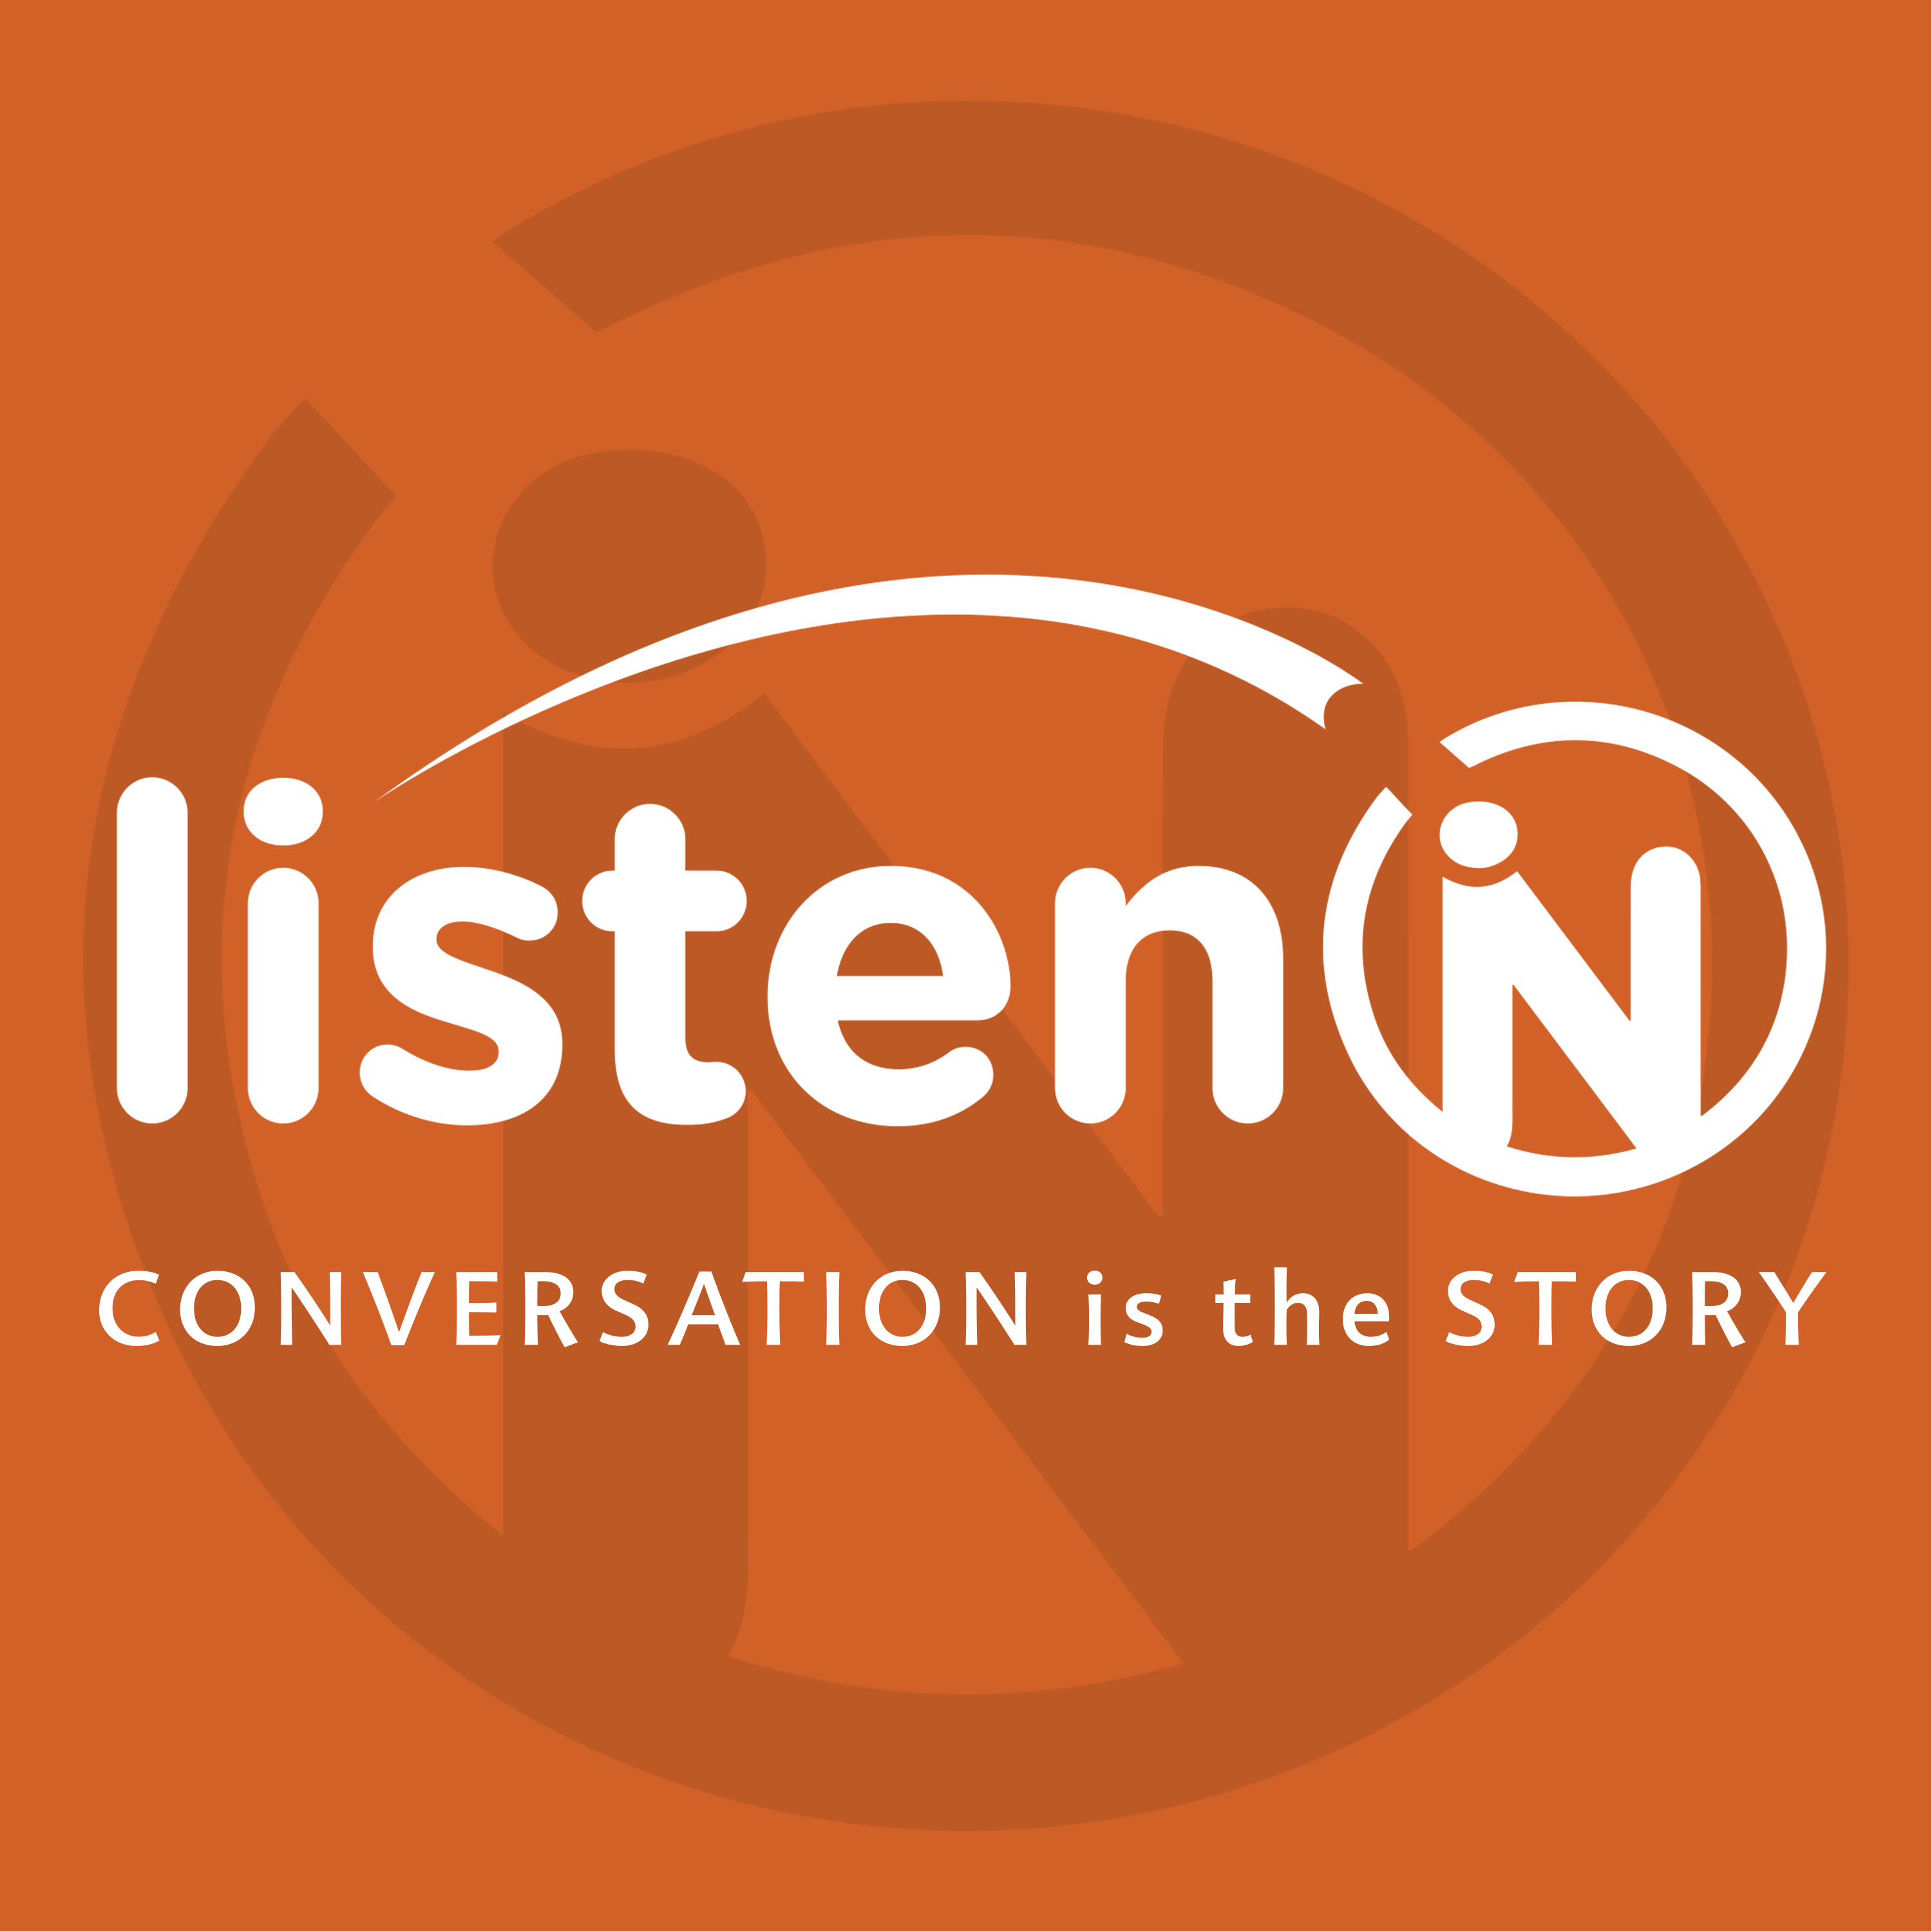 listenN: Conversation is the Story show image